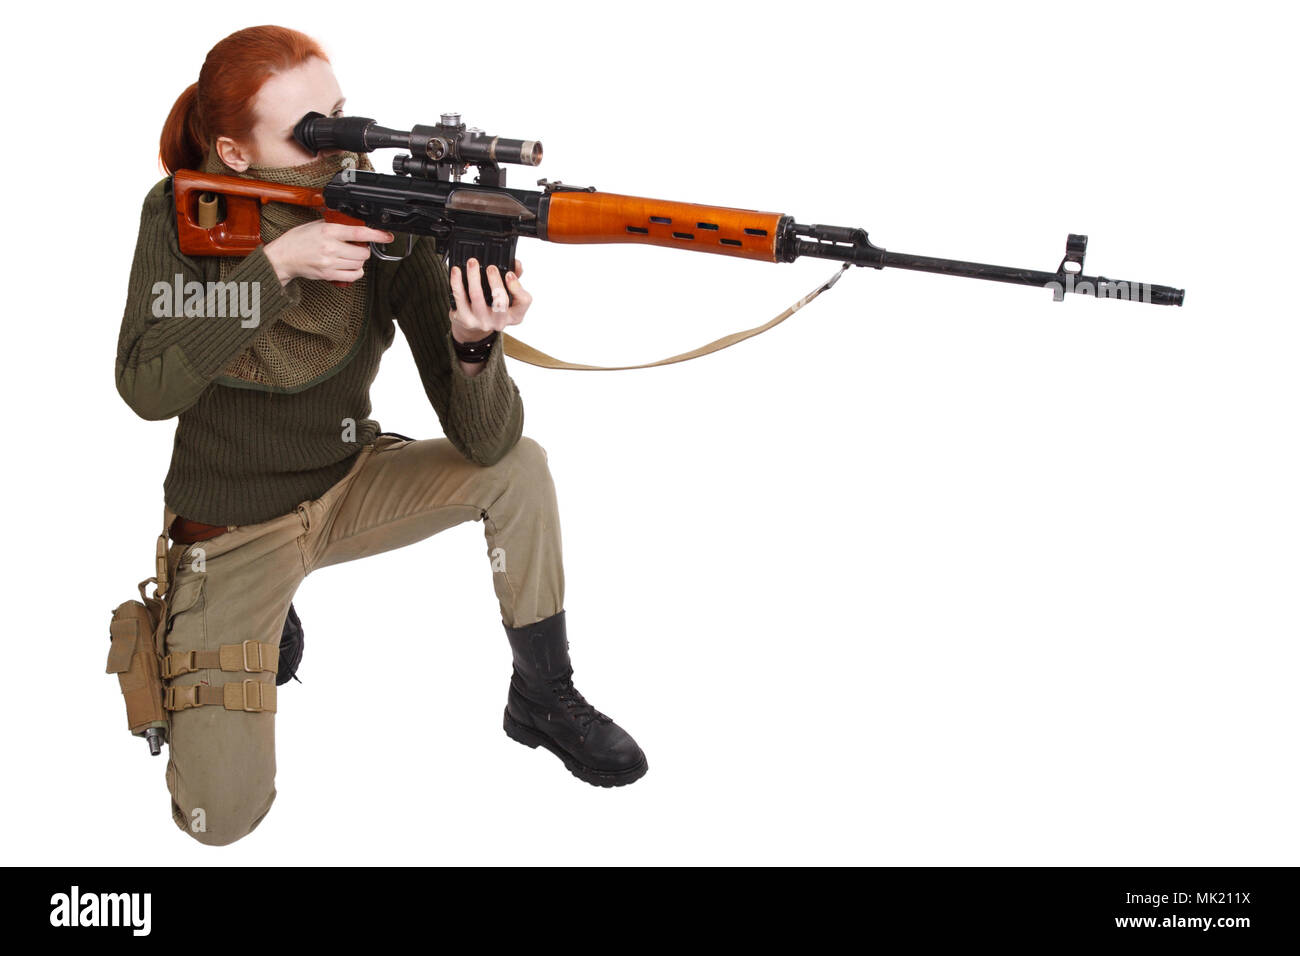 woman sniper with SVD sniper rifle isolated on white background - Stock Image